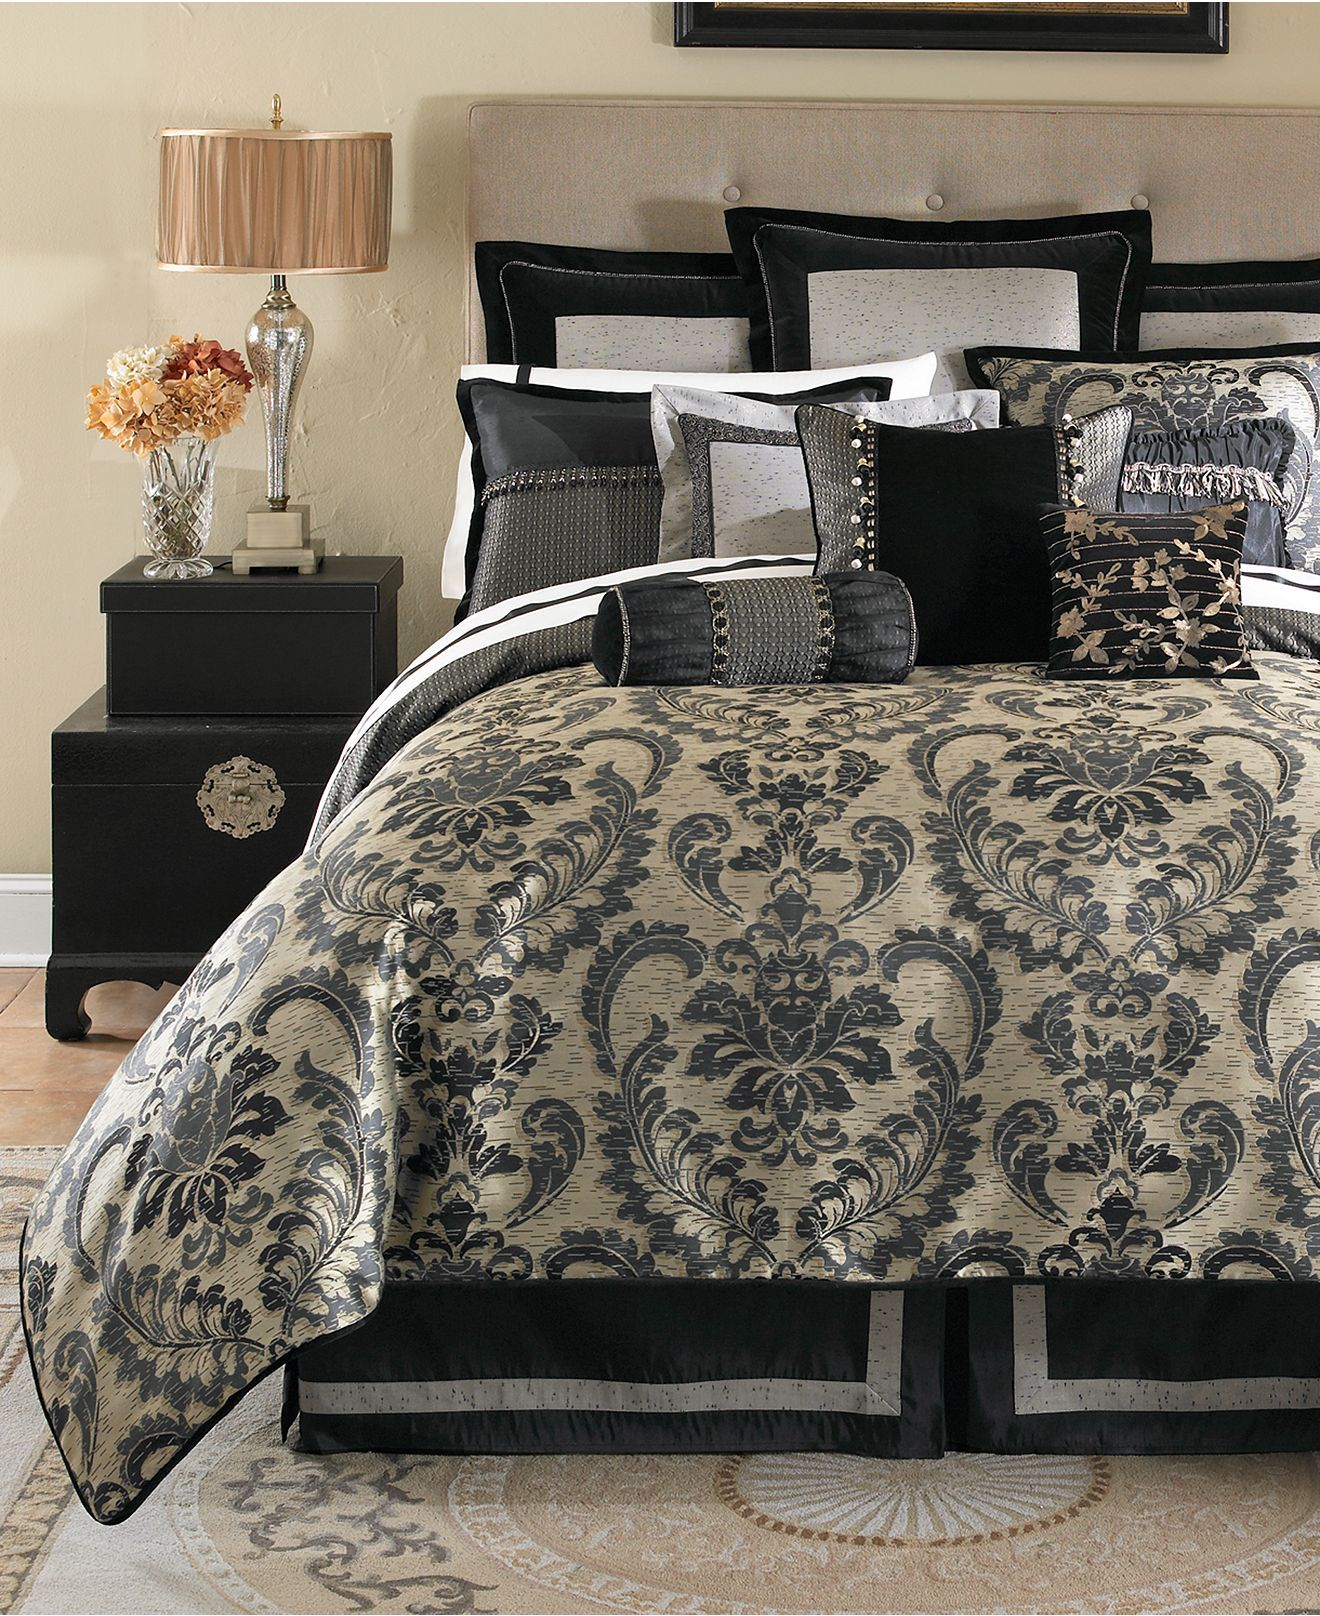 Master Bedroom Bedding Collections Waterford Bedding Ormonde Collection Bedding Collections Bed